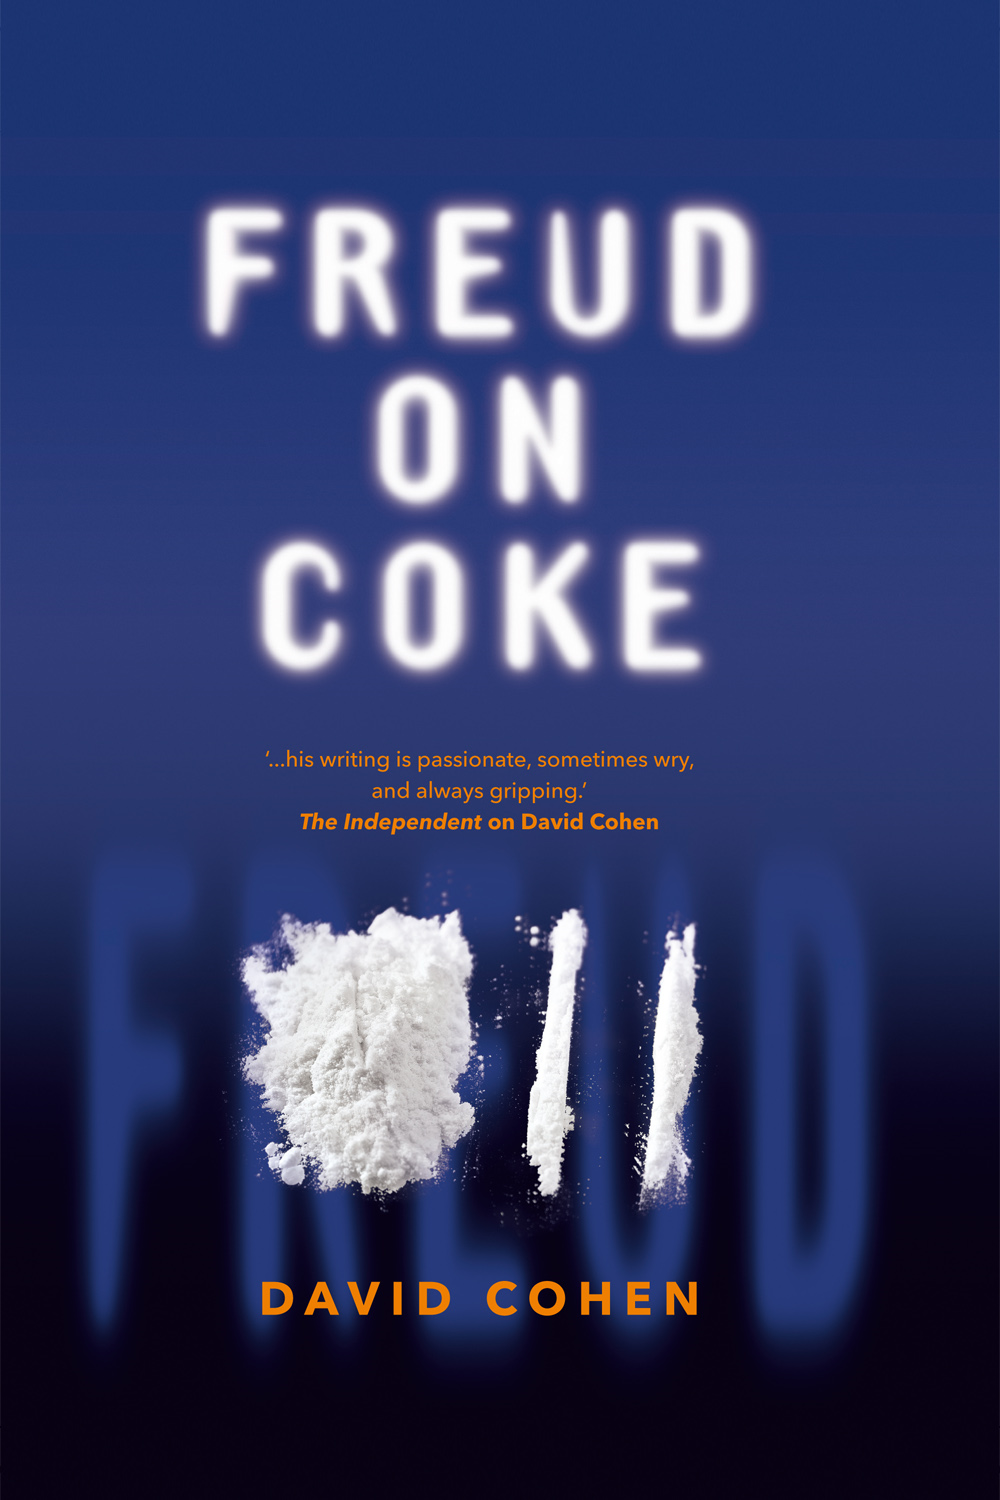 Freud on Coke By: David Cohen